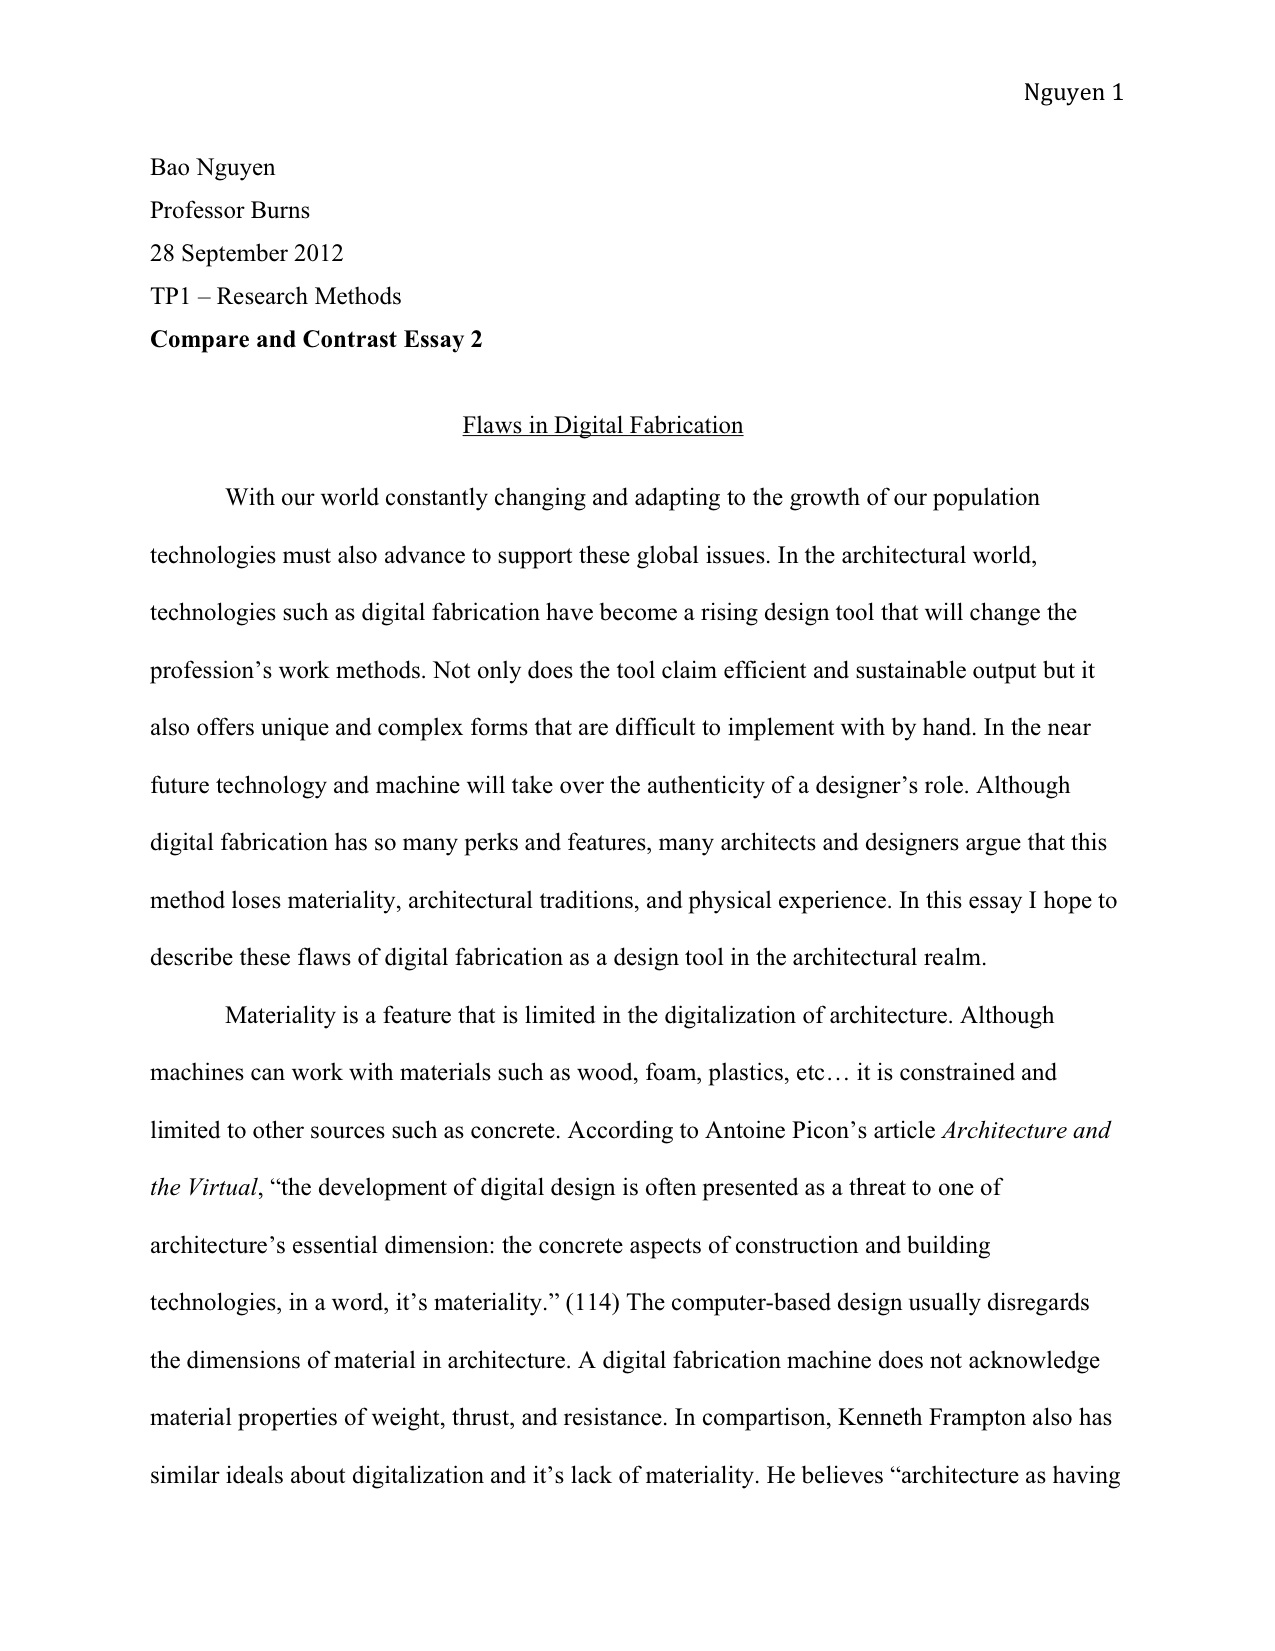 Write my own essay